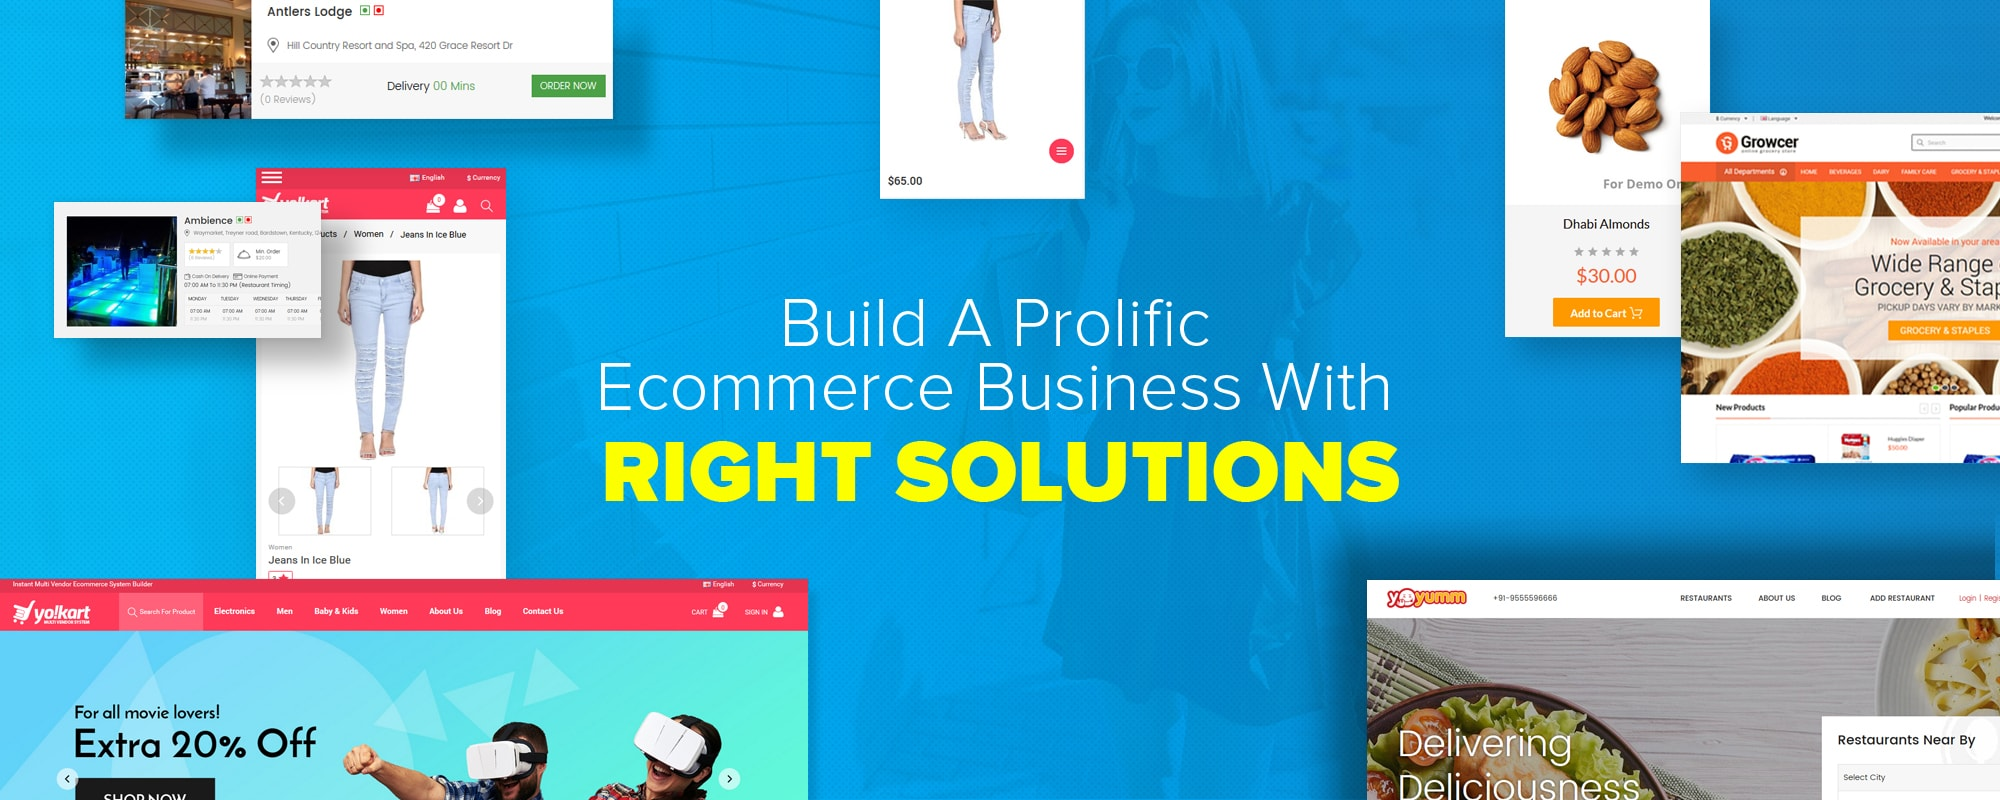 Make Your Own Store Website with FATbit's Affordable eCommerce Platforms